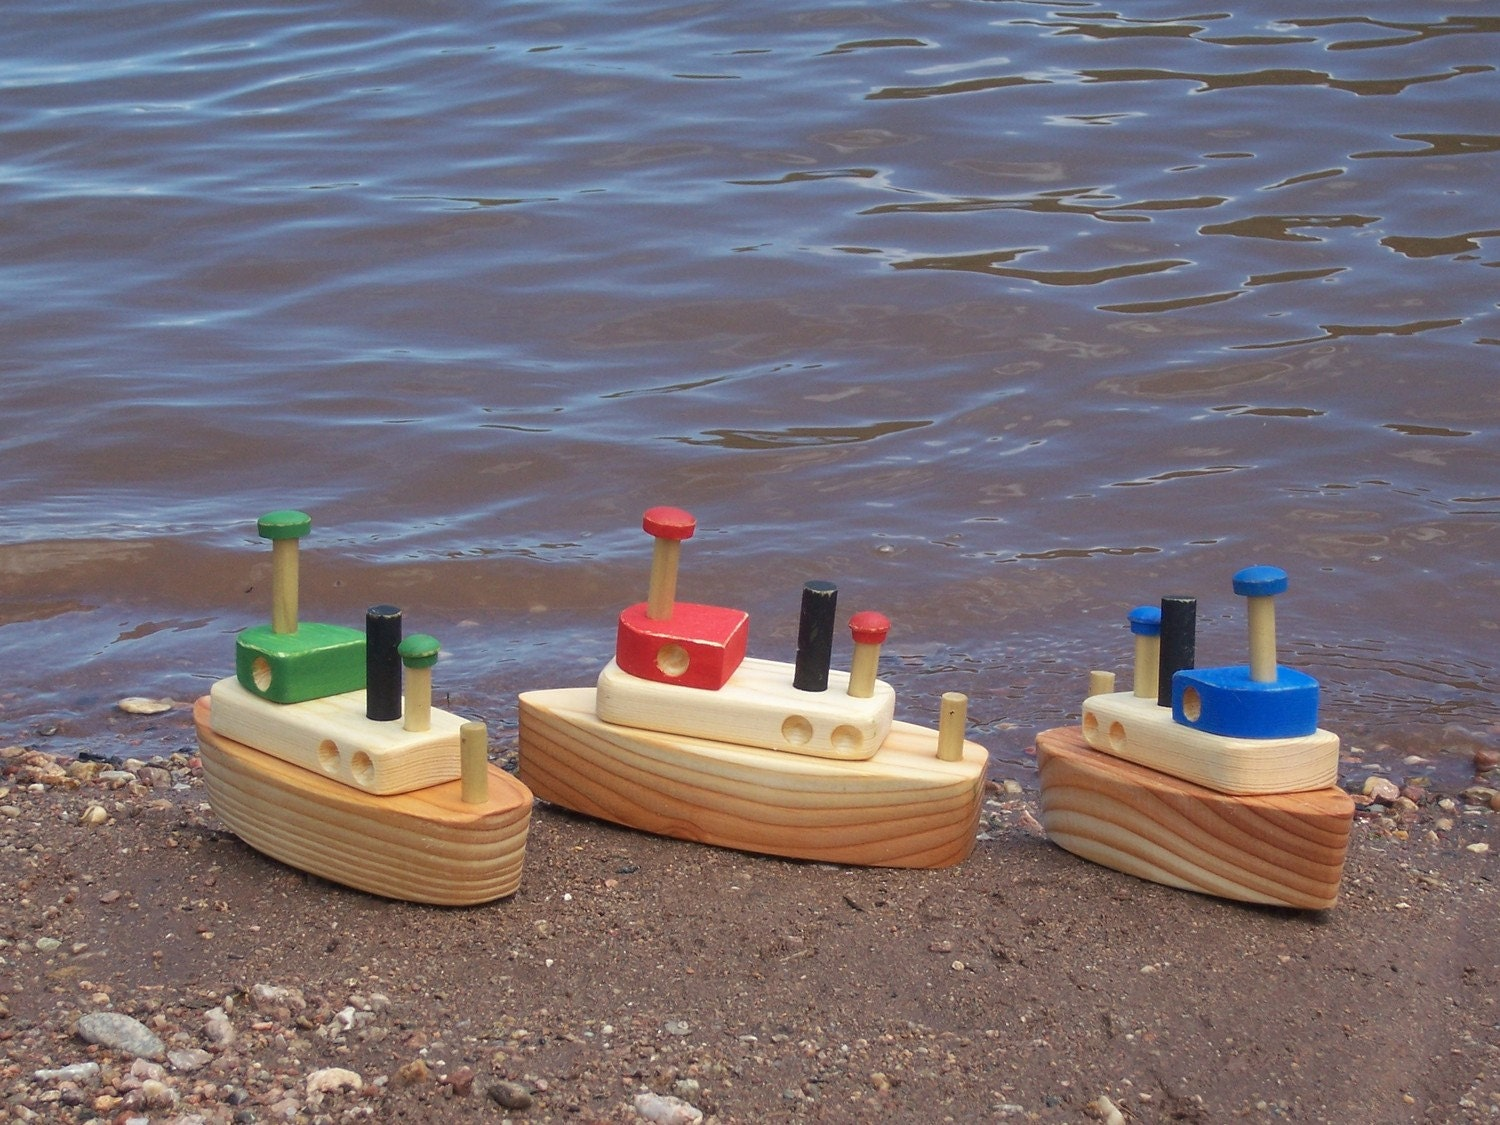 ... Wooden Toy Tug Boat moreover Indoor Wood Bench Plans. on wooden boat